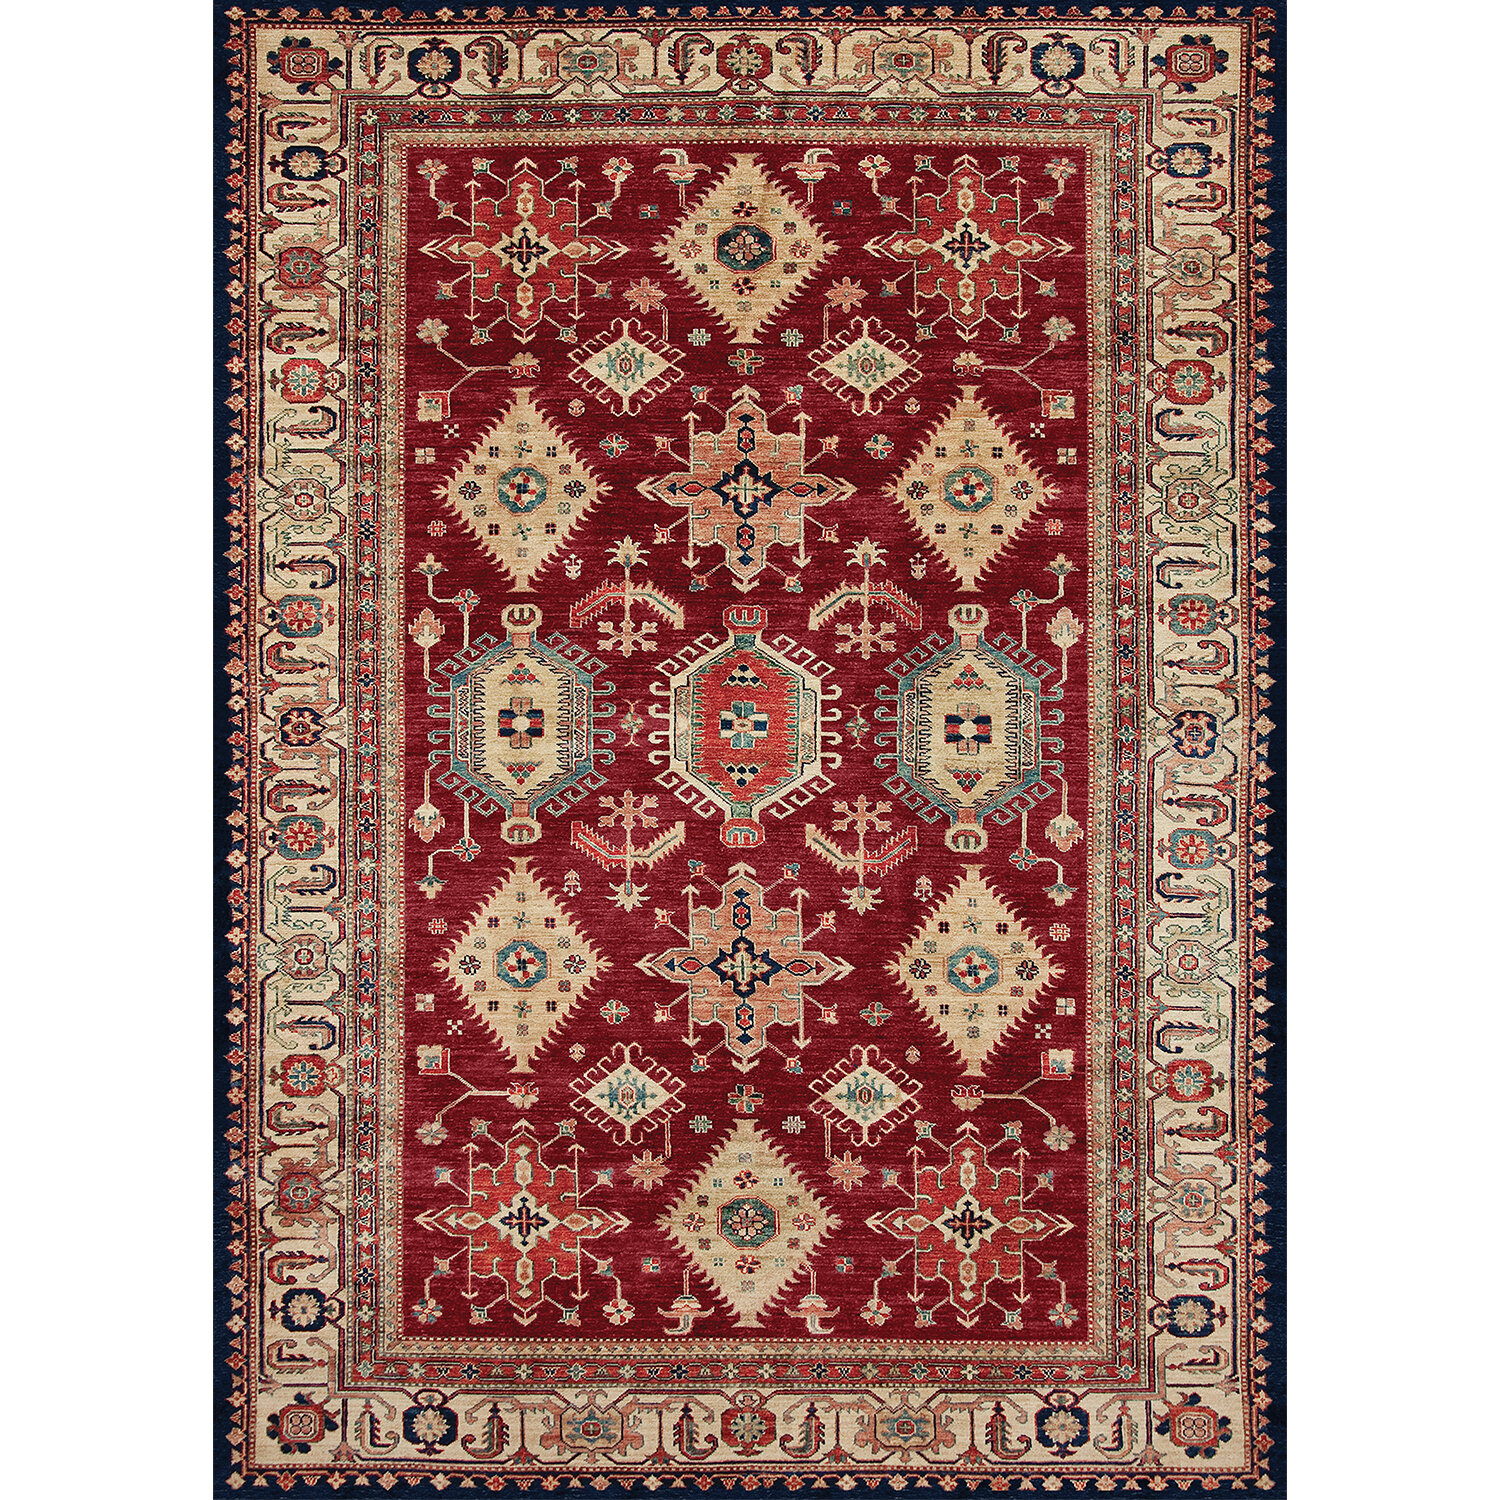 new common havanah rugs black outdoor l shop nature pd x rectangular machine indoor area w rug haven made actual ft and